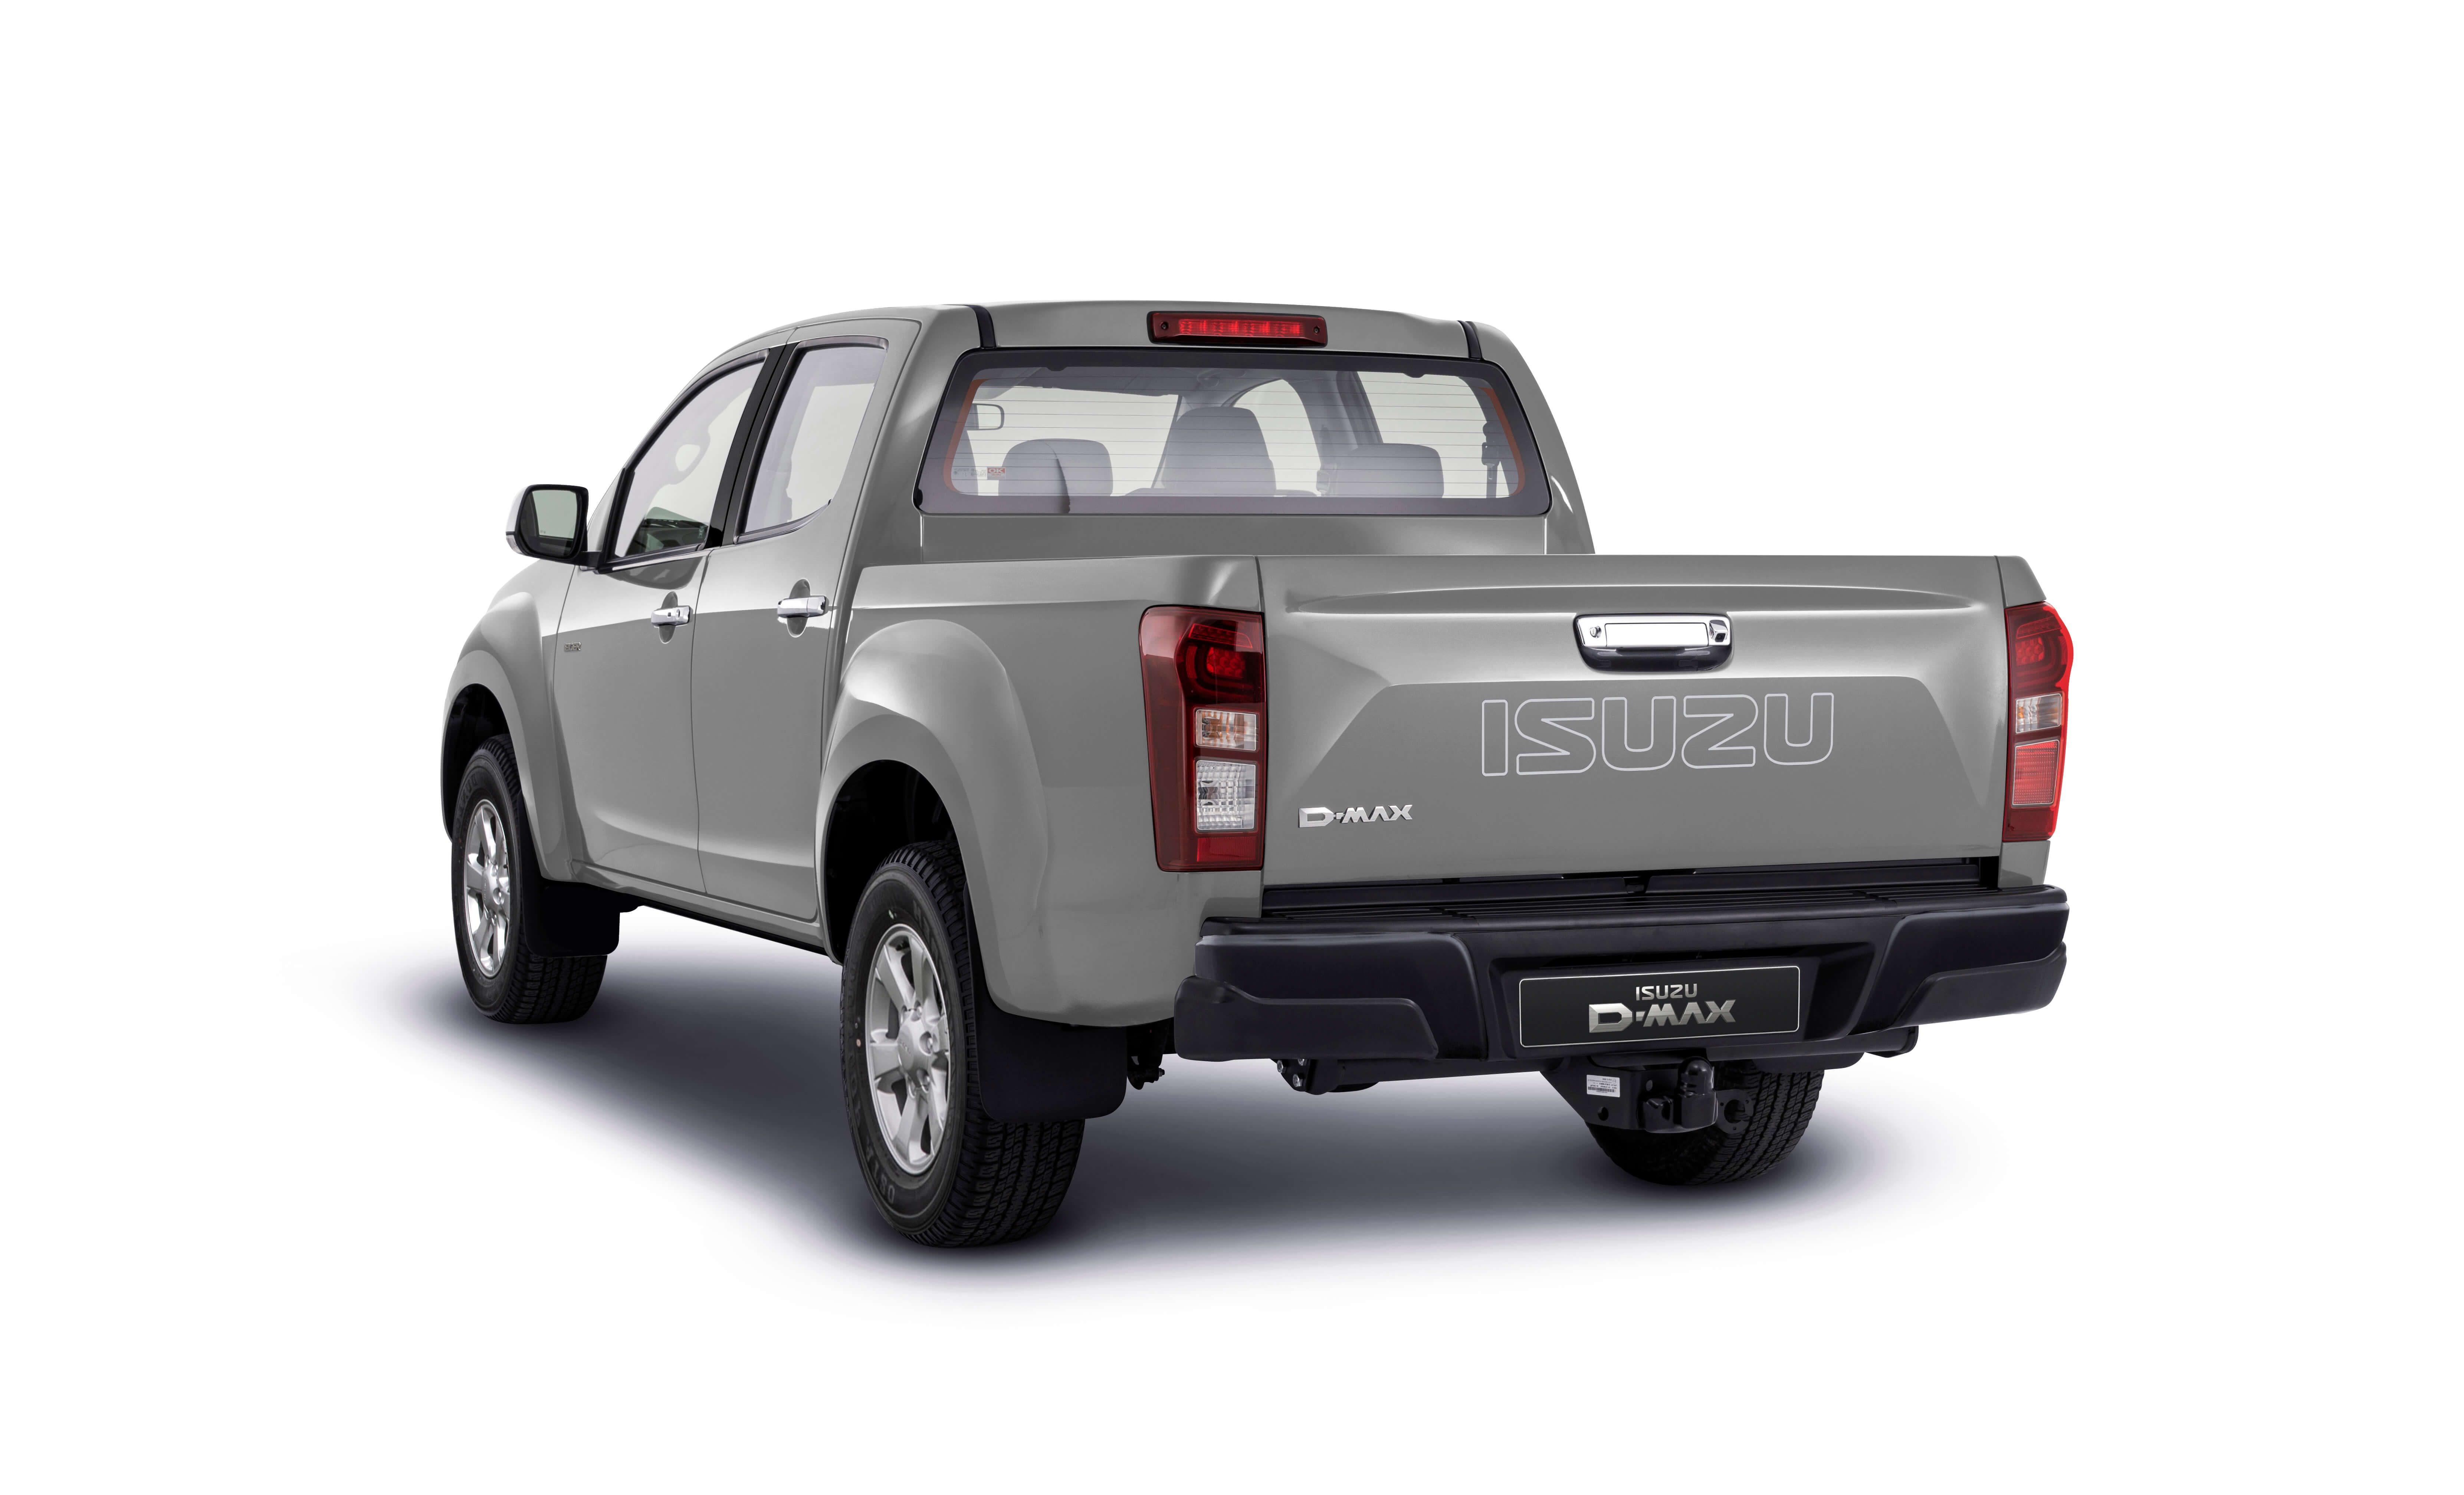 Isuzu D-Max Eiger rear view in silver